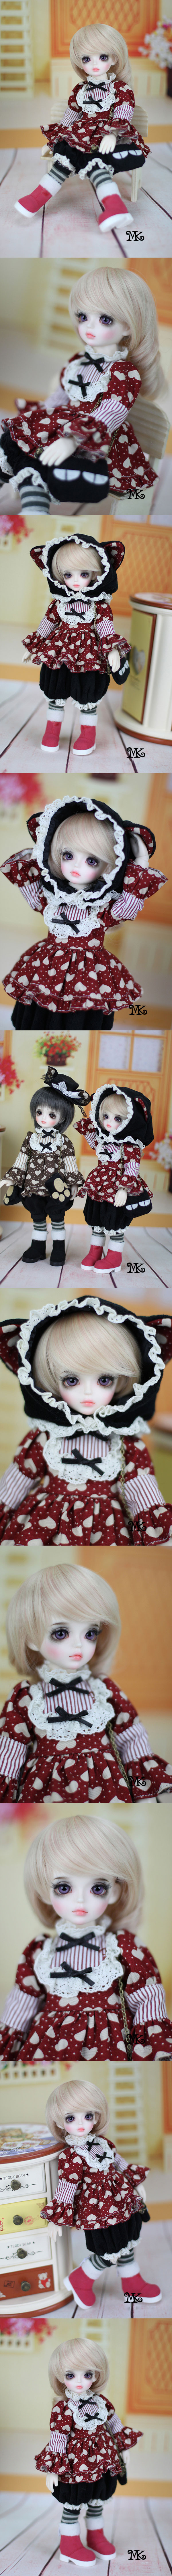 BJD Nelly 27cm Girl Ball-jointed doll